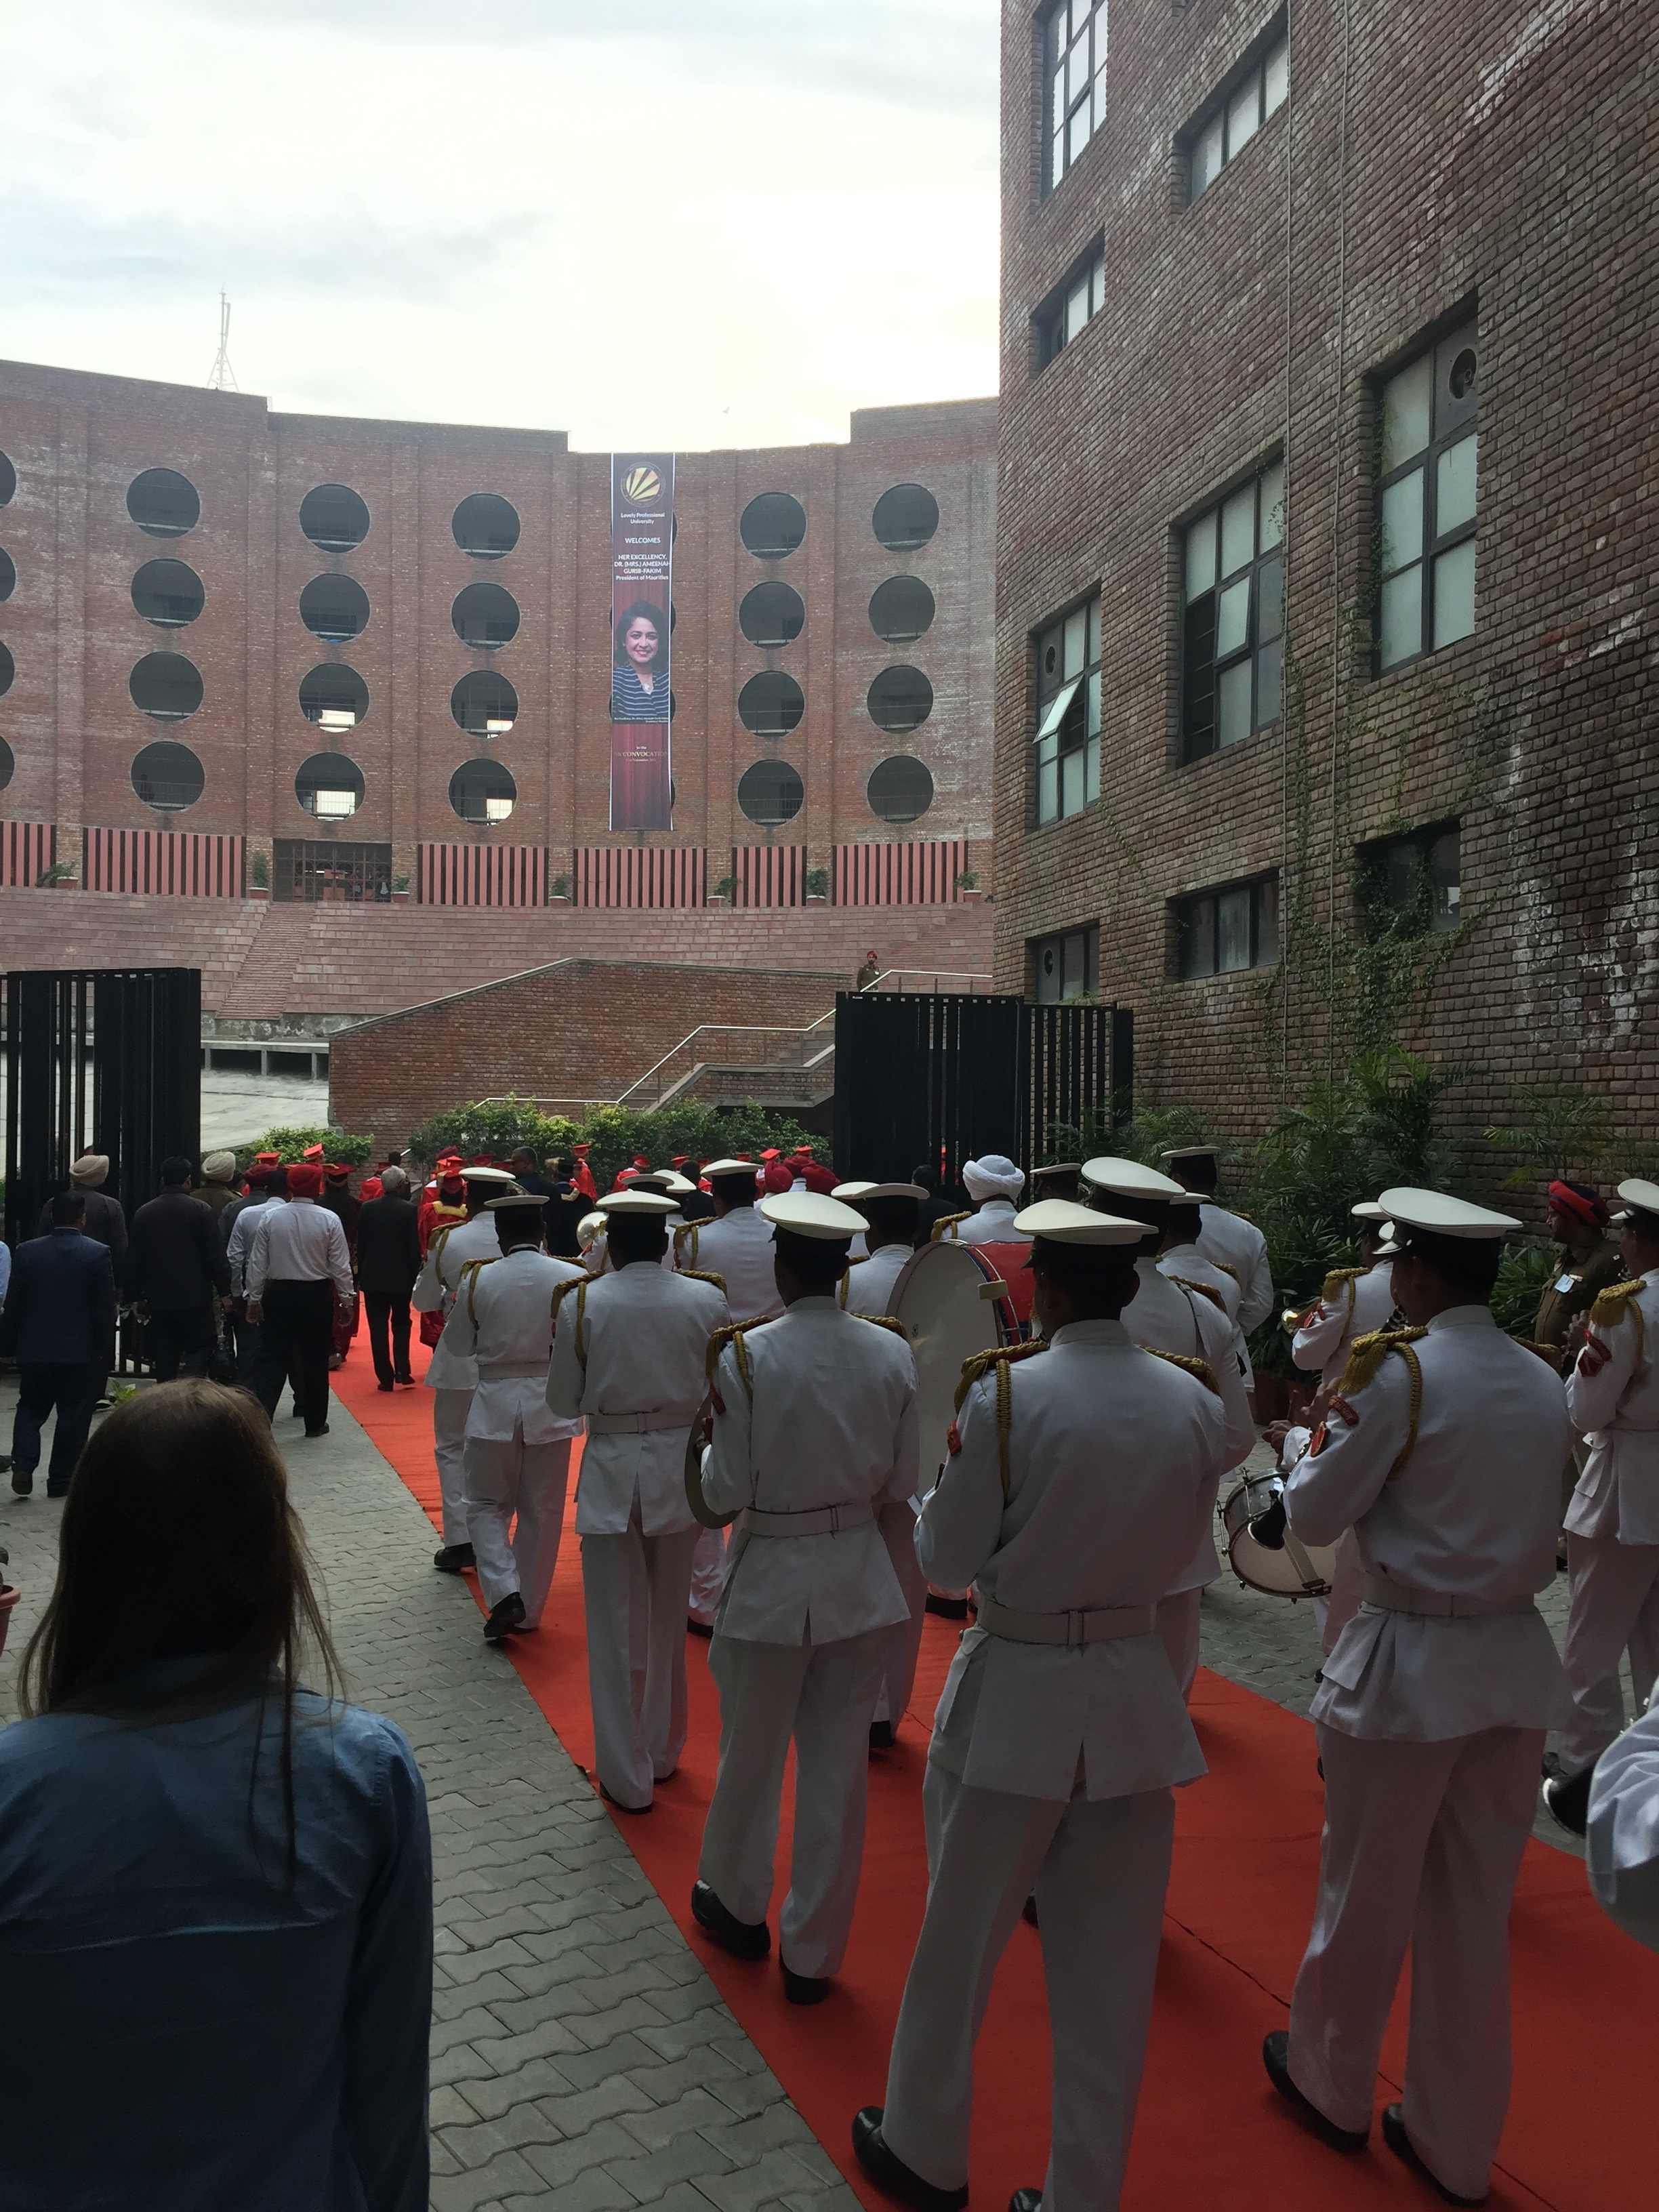 """Walking with the marching band into the commencement. There's uncomfortable, and then there's """"marching into the front of an auditorium in front of an entire Indian university graduation ceremony with the band"""" uncomfortable."""